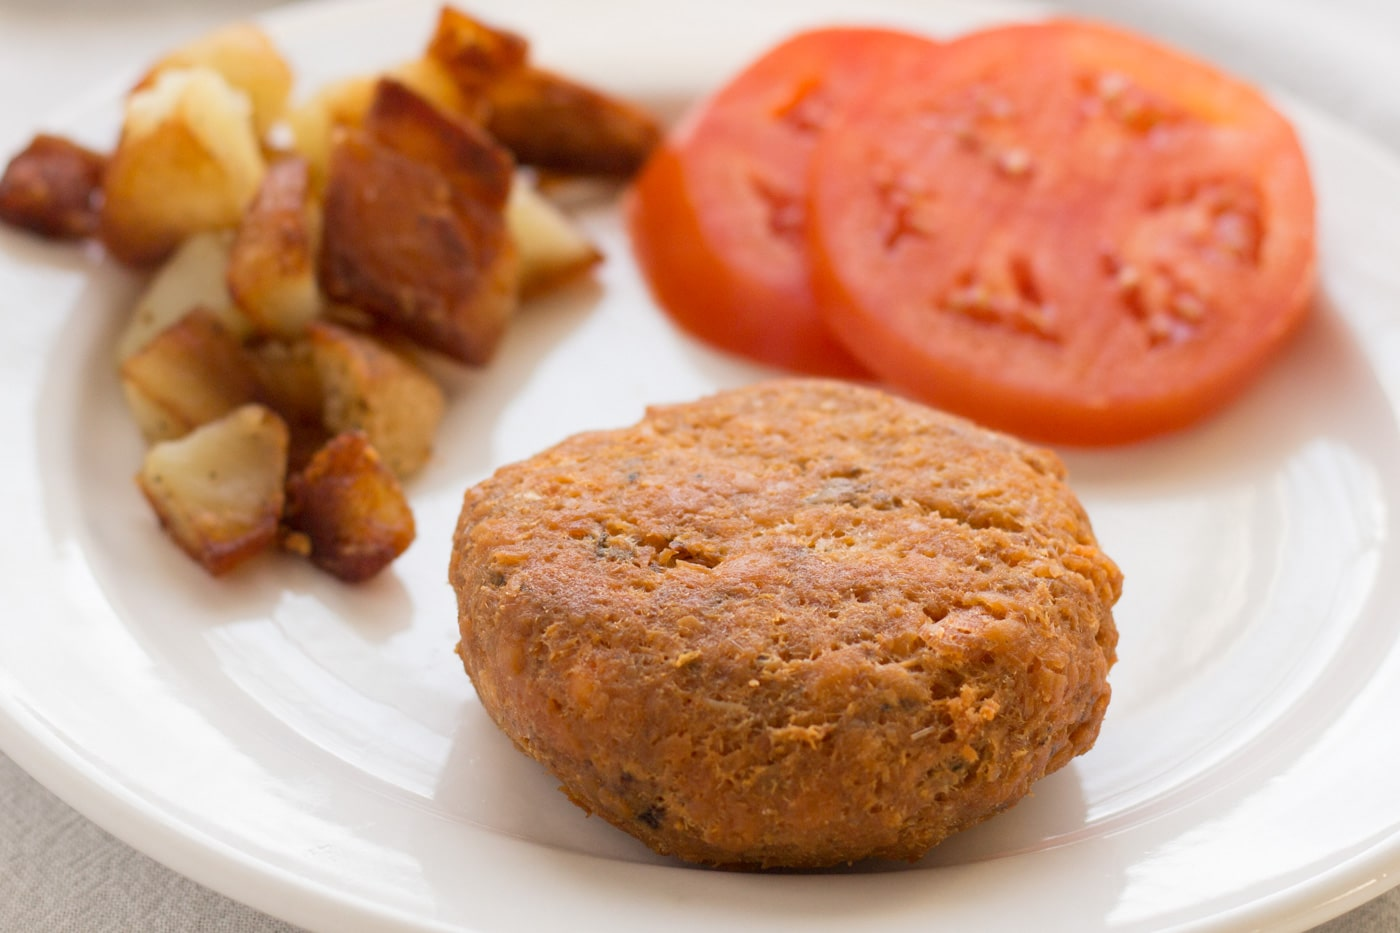 Salmon Patties with home fries and tomato slices on a white plate